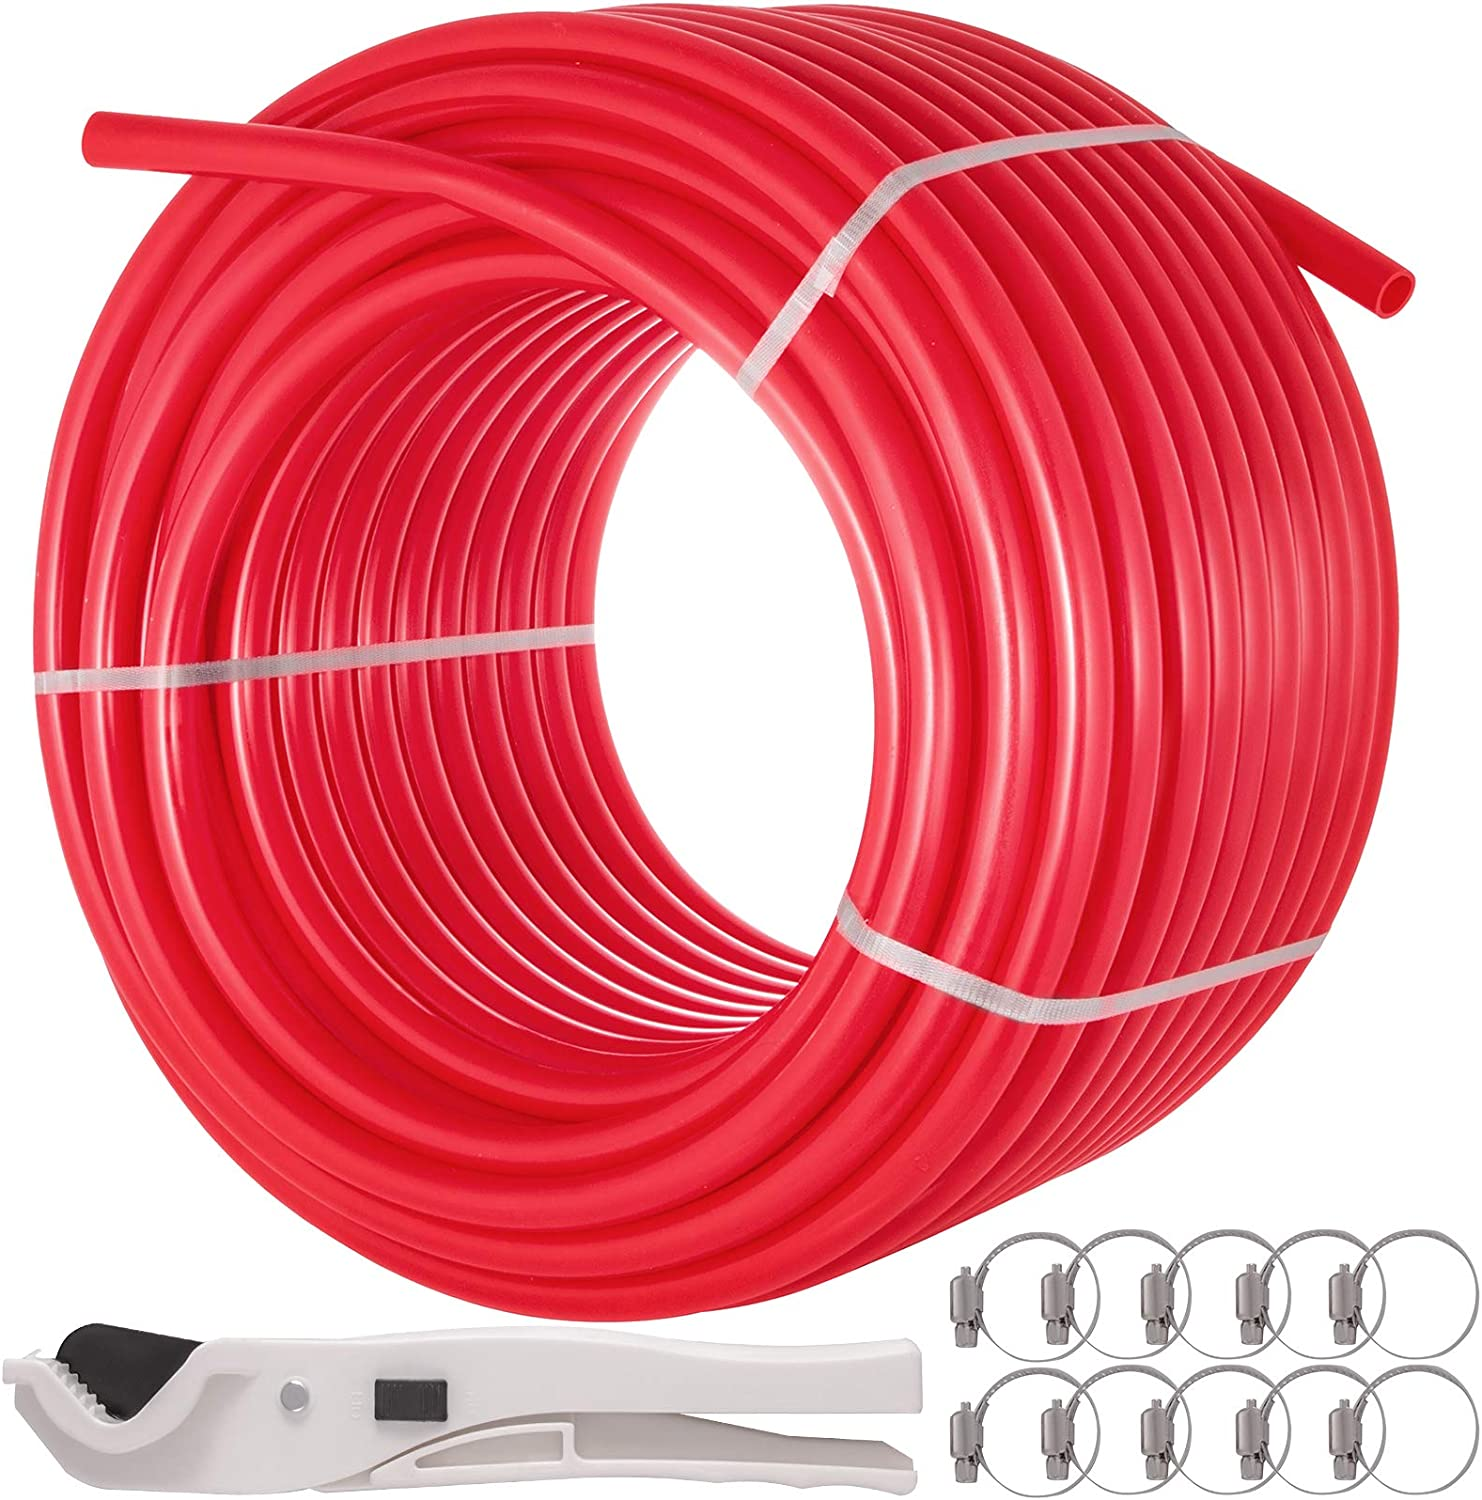 Happybuy 5/8 Inch x 500Ft PEX Tubing Oxygen Barrier O2 EVOH Pex-B Red Radiant Floor Heat Durable Plumbing Flexible for Residential Commercial Radiant Floor Heating Pex Pipe